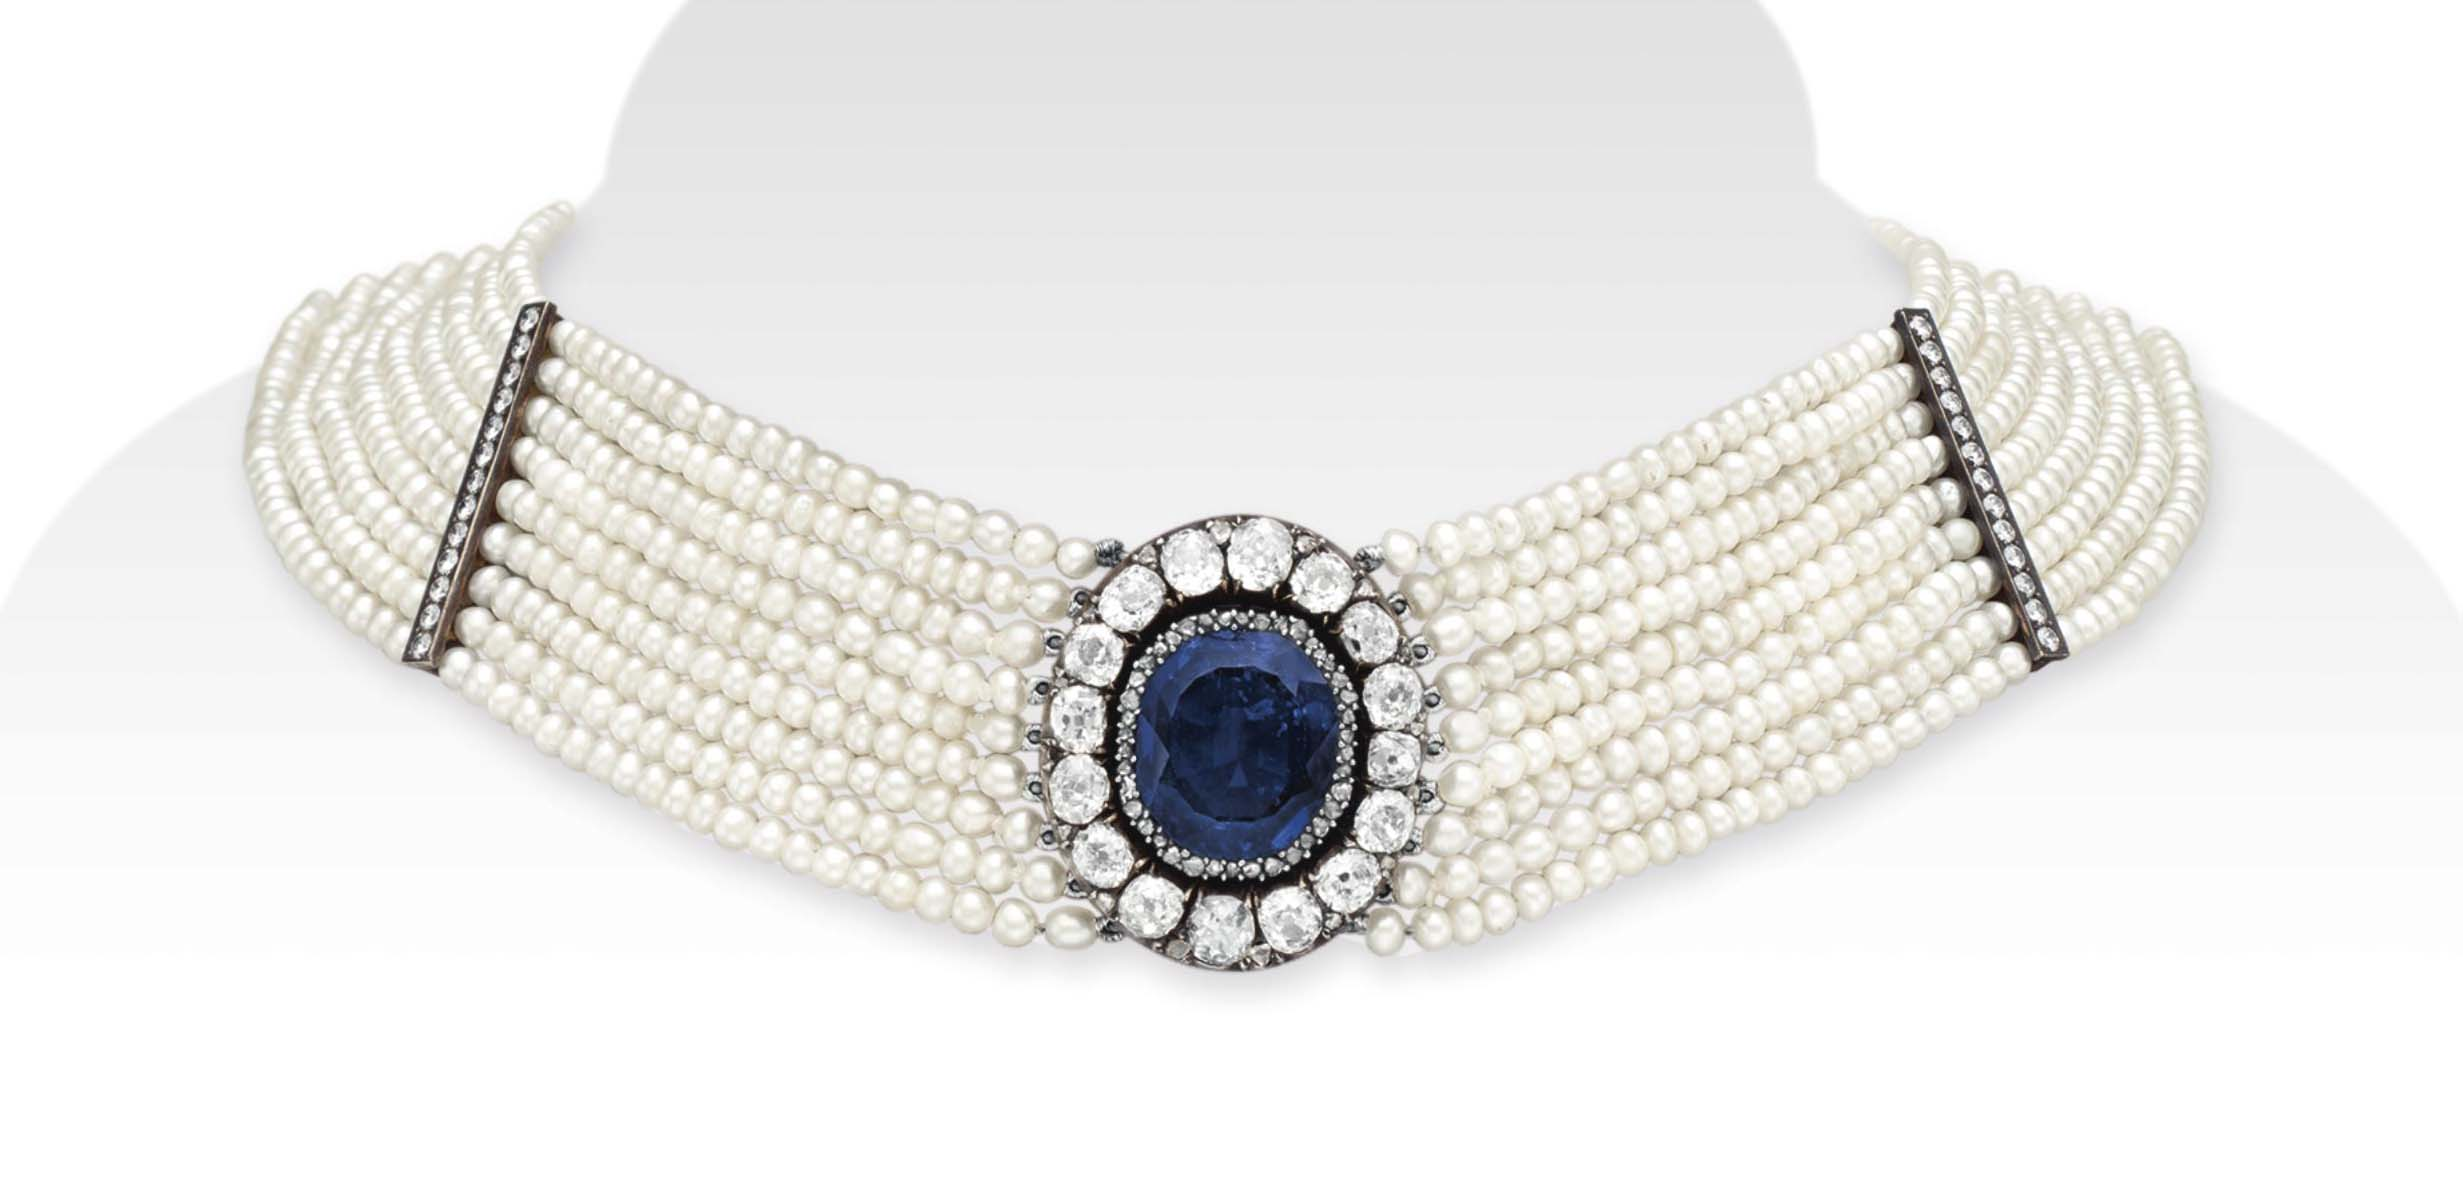 A SAPPHIRE, DIAMOND AND SEED PEARL CHOKER NECKLACE